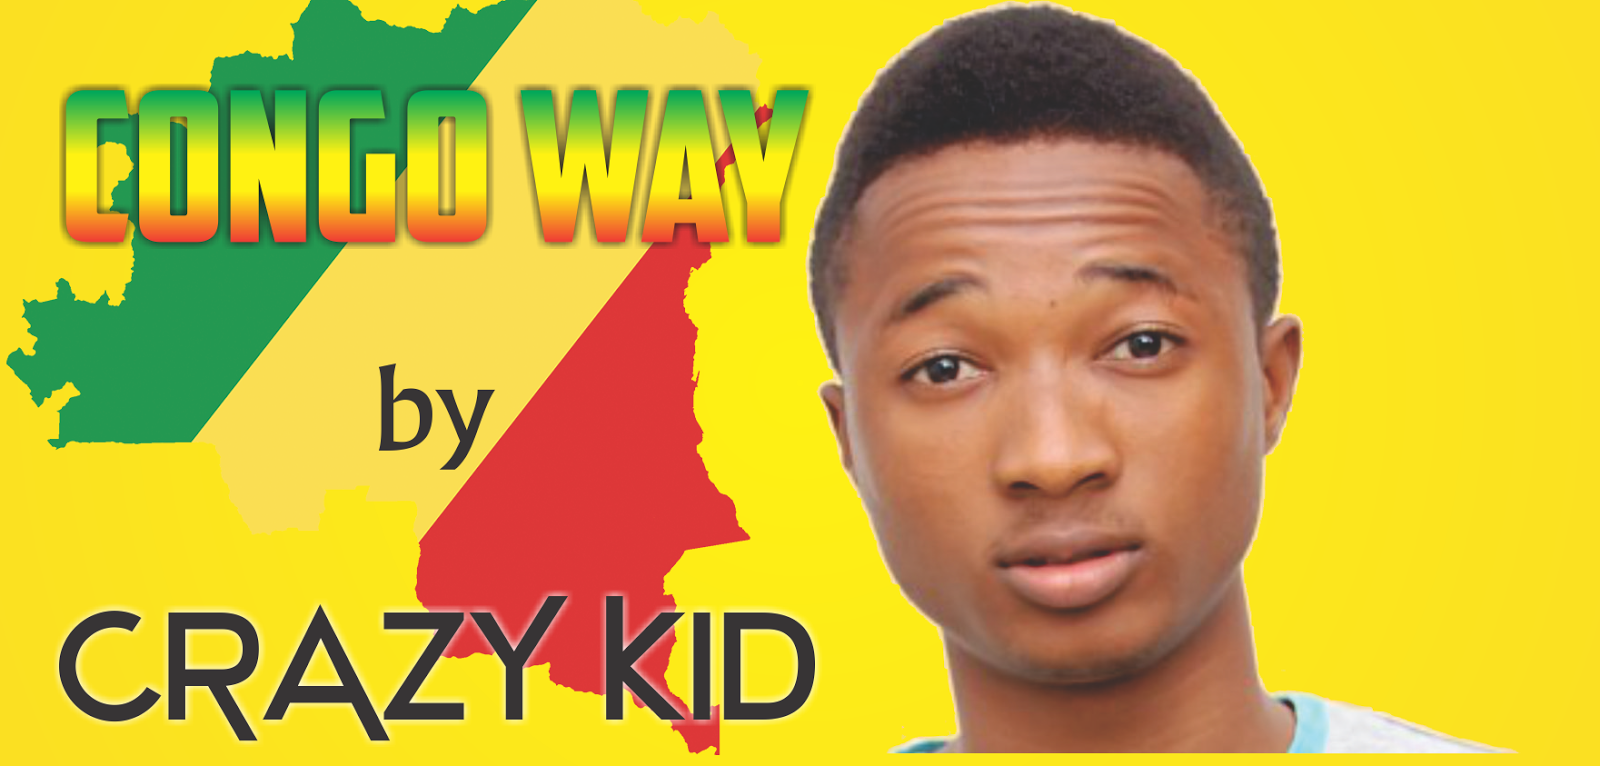 CONGO WAY by CRAZY KID | Prod. by Teedon